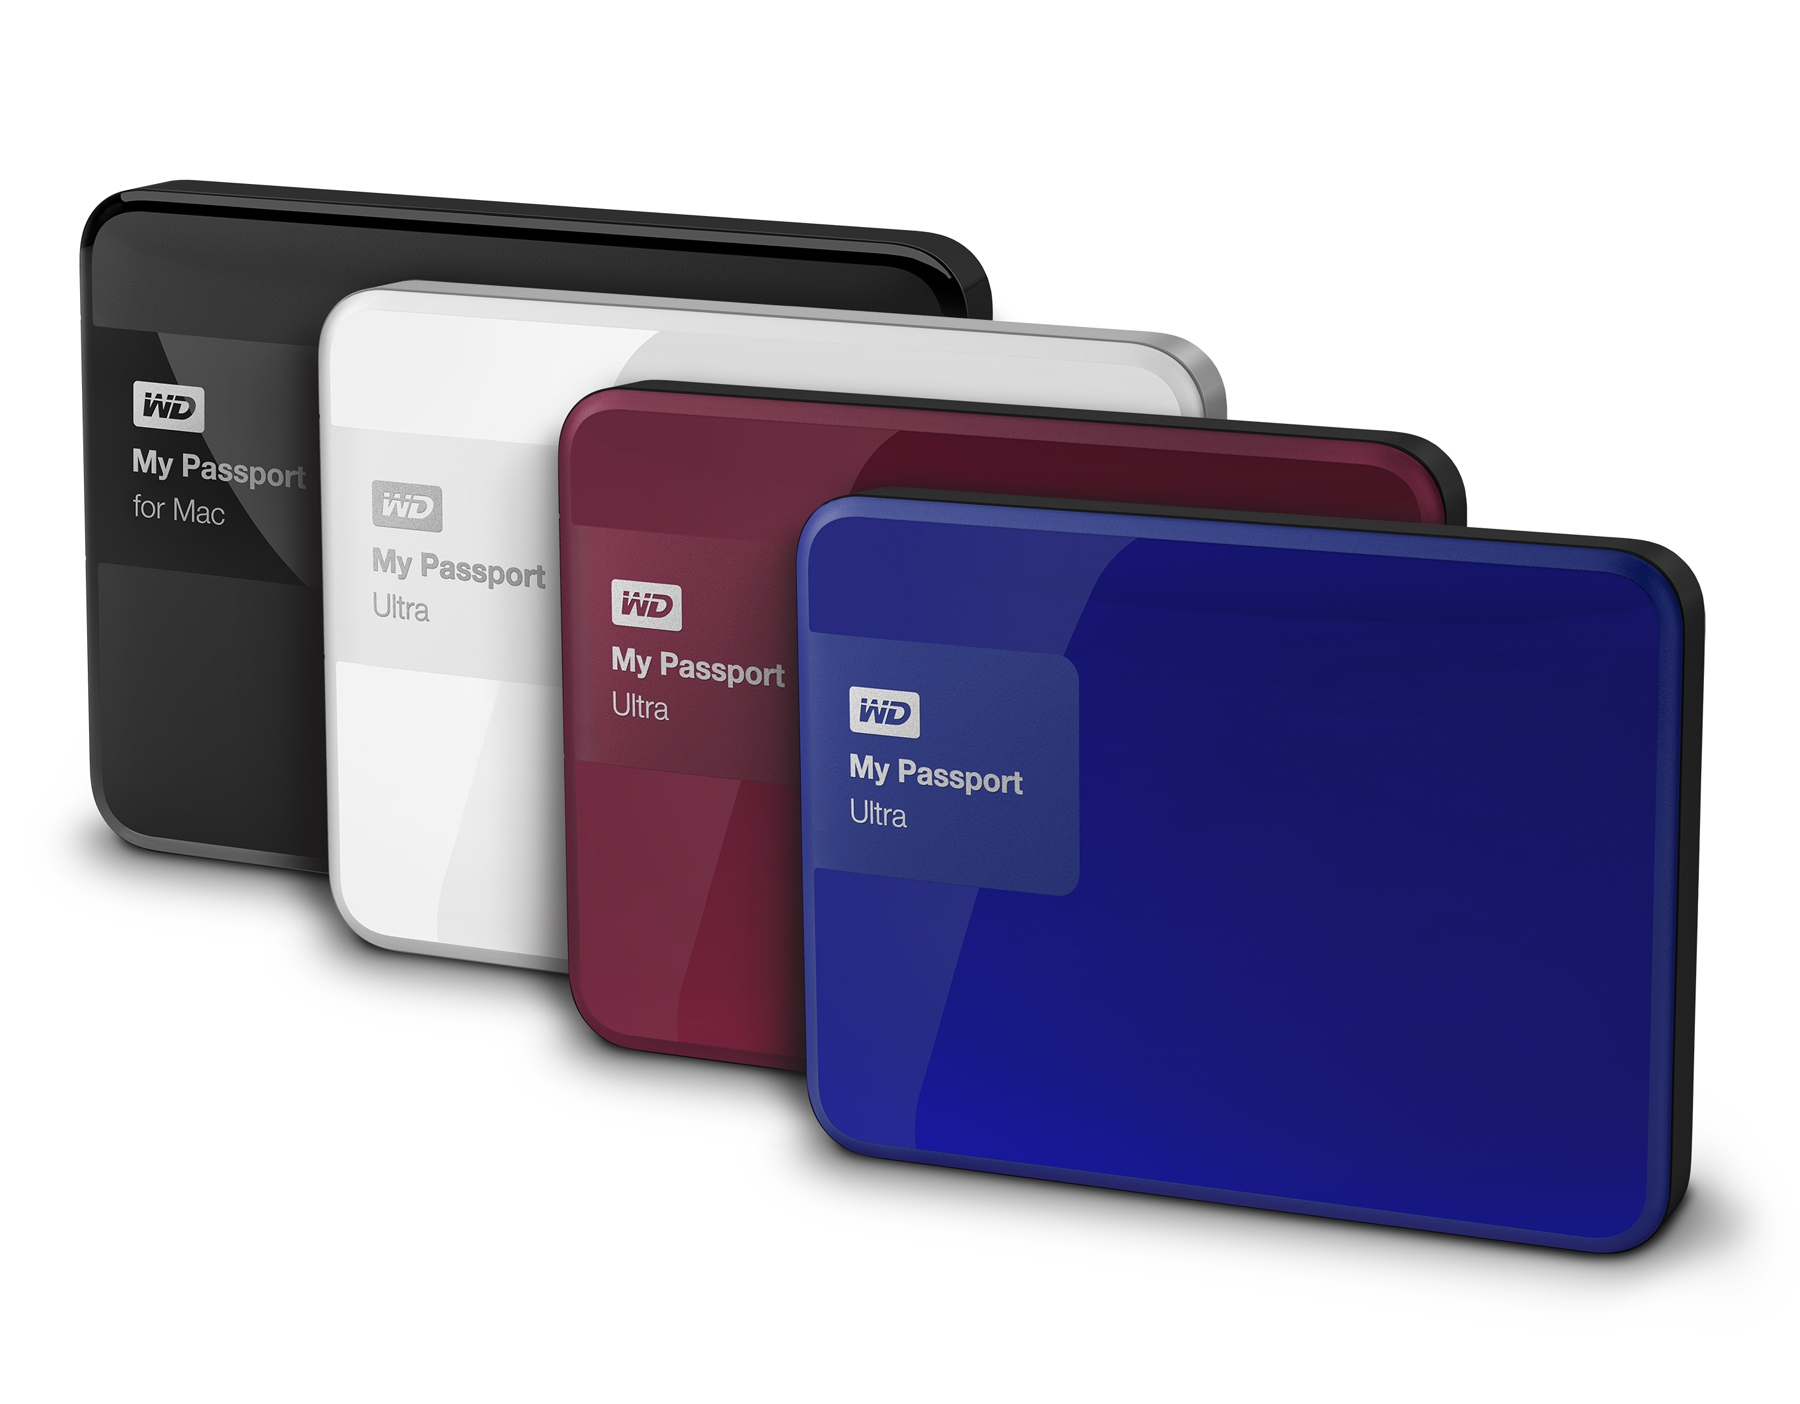 Western Digital HD externo My Passport Ultra portable 4TB-Especificações